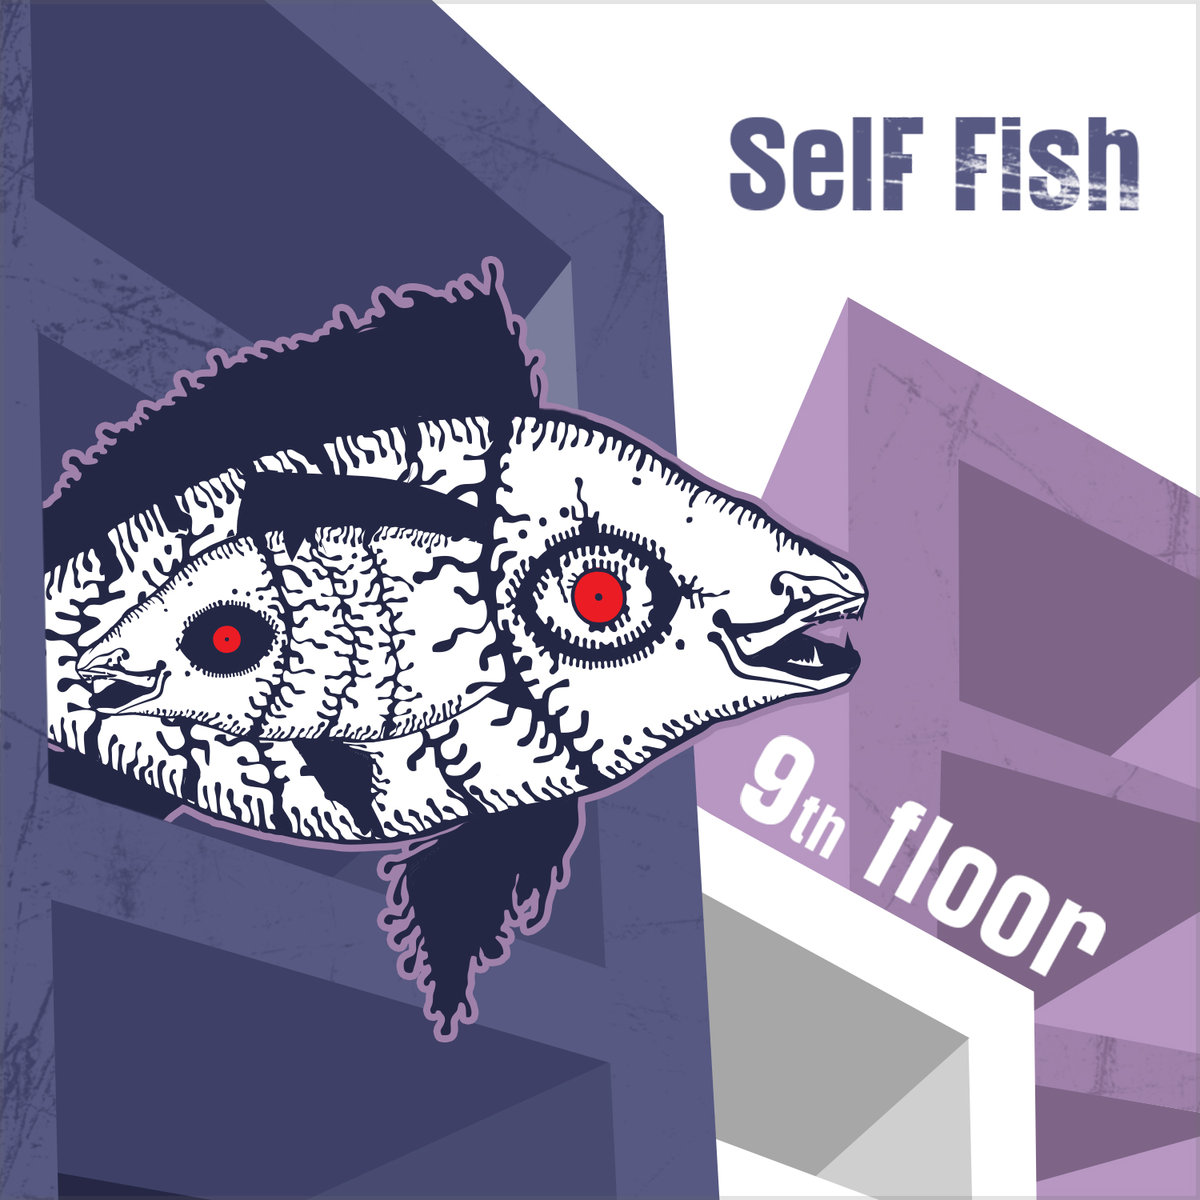 Self Fish - 9th Floor @ 'Self Fish' album (electronic, dubstep)